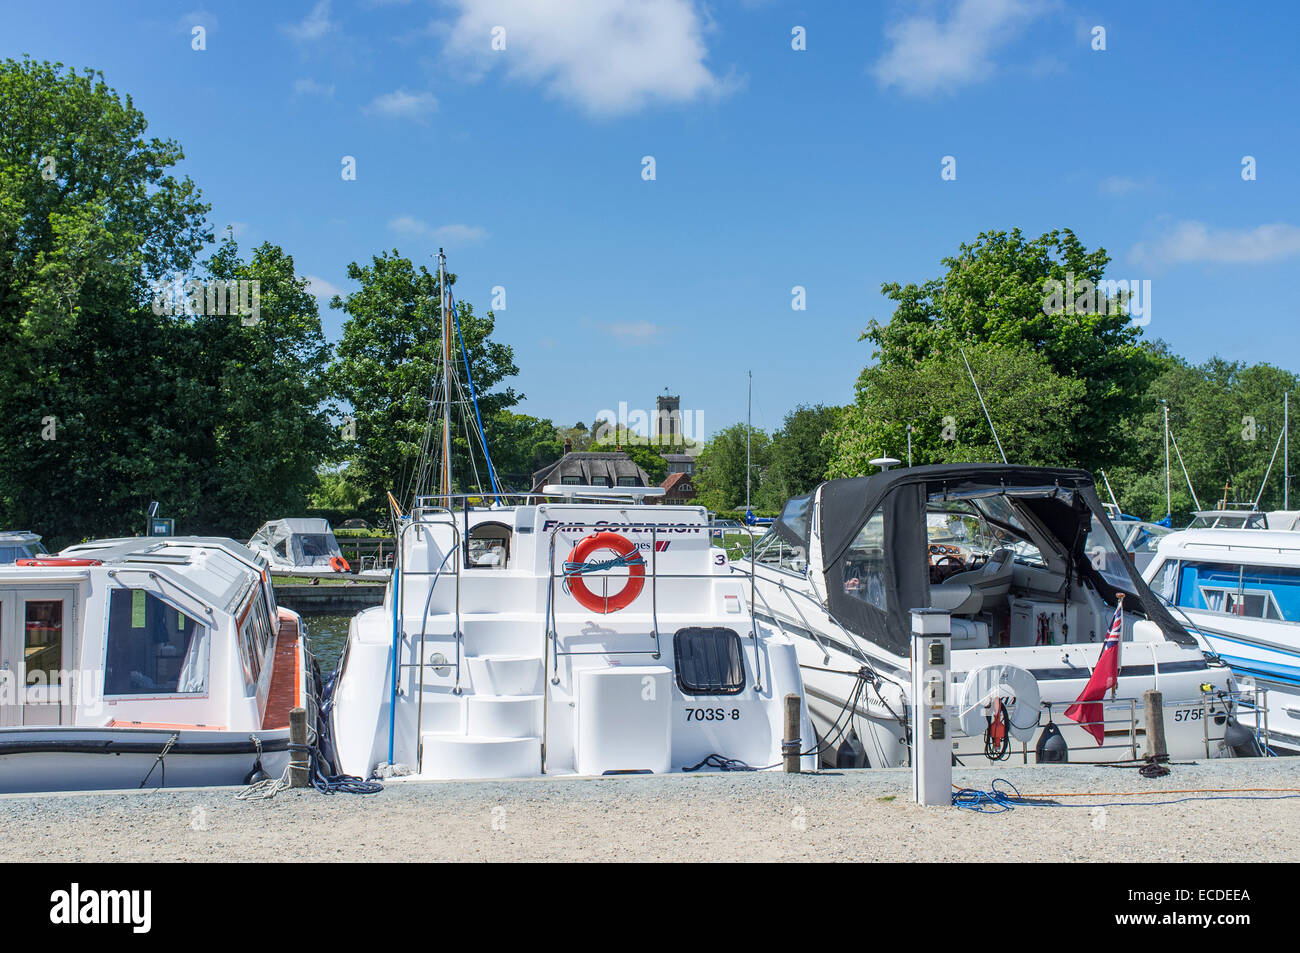 Broads Cruisers Moored at Ranworth Staithe Norfolk England - Stock Image